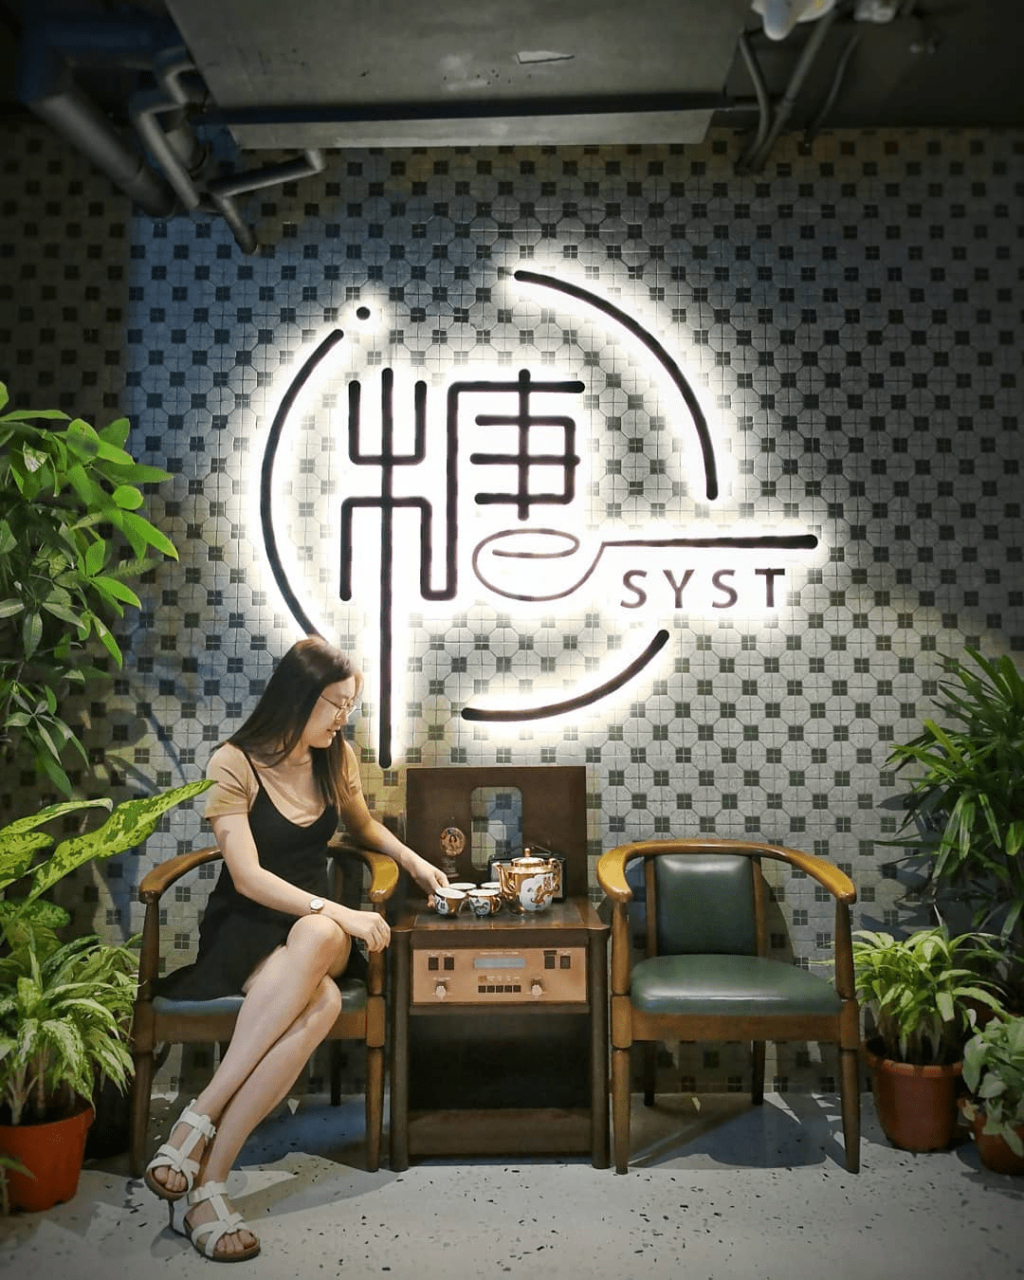 SYST - furniture photo spot